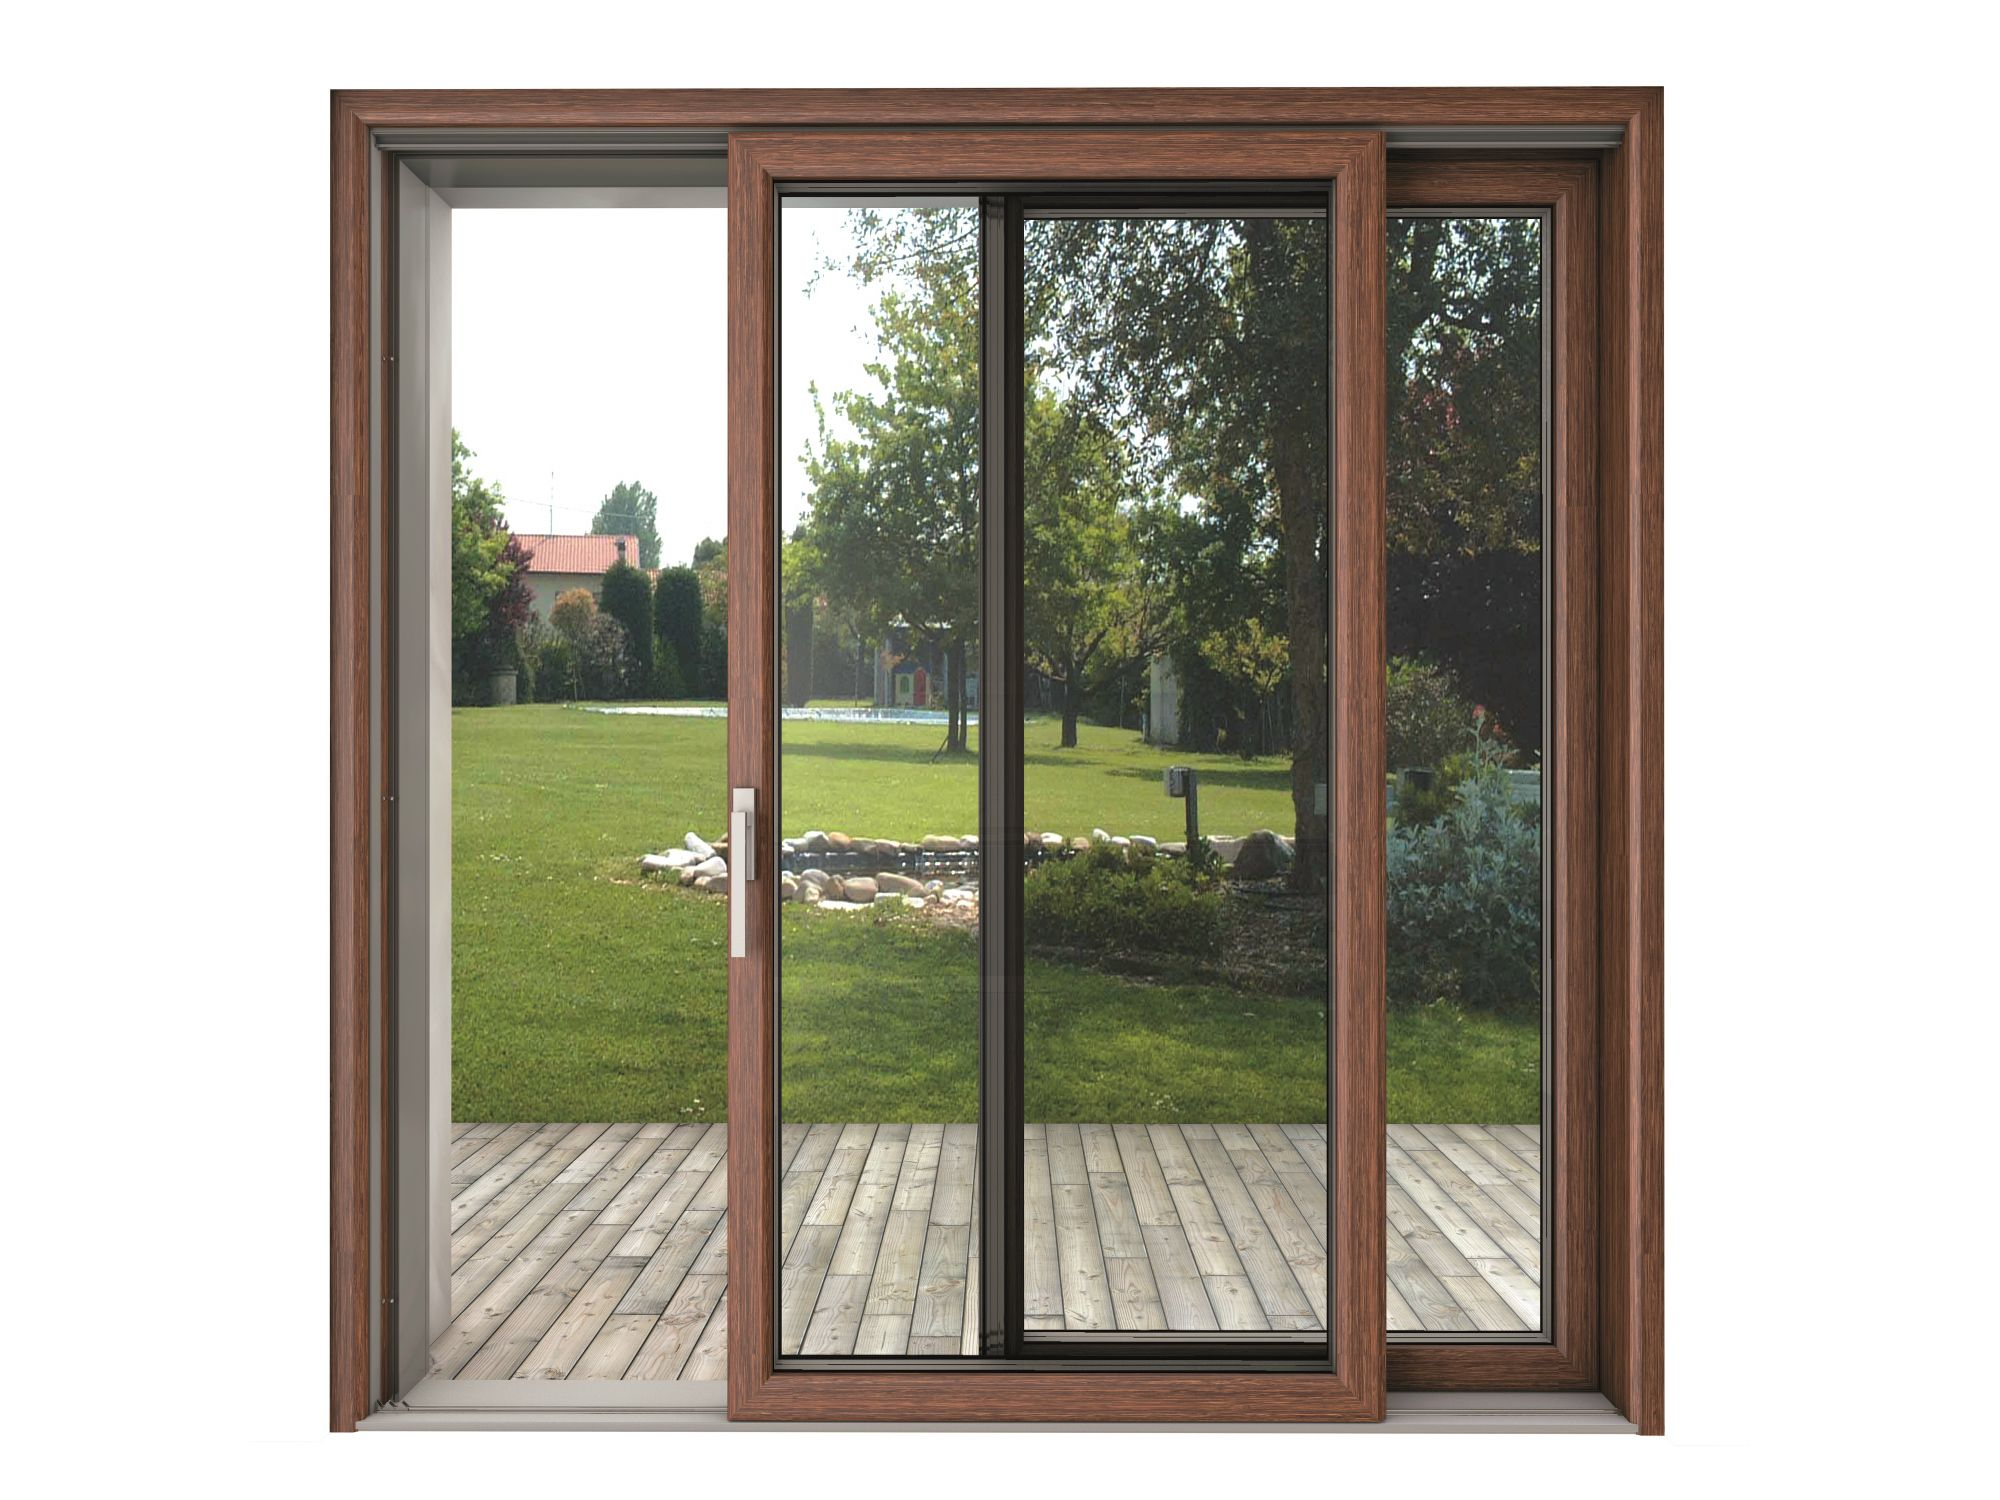 Sliding Window Be An Option To The